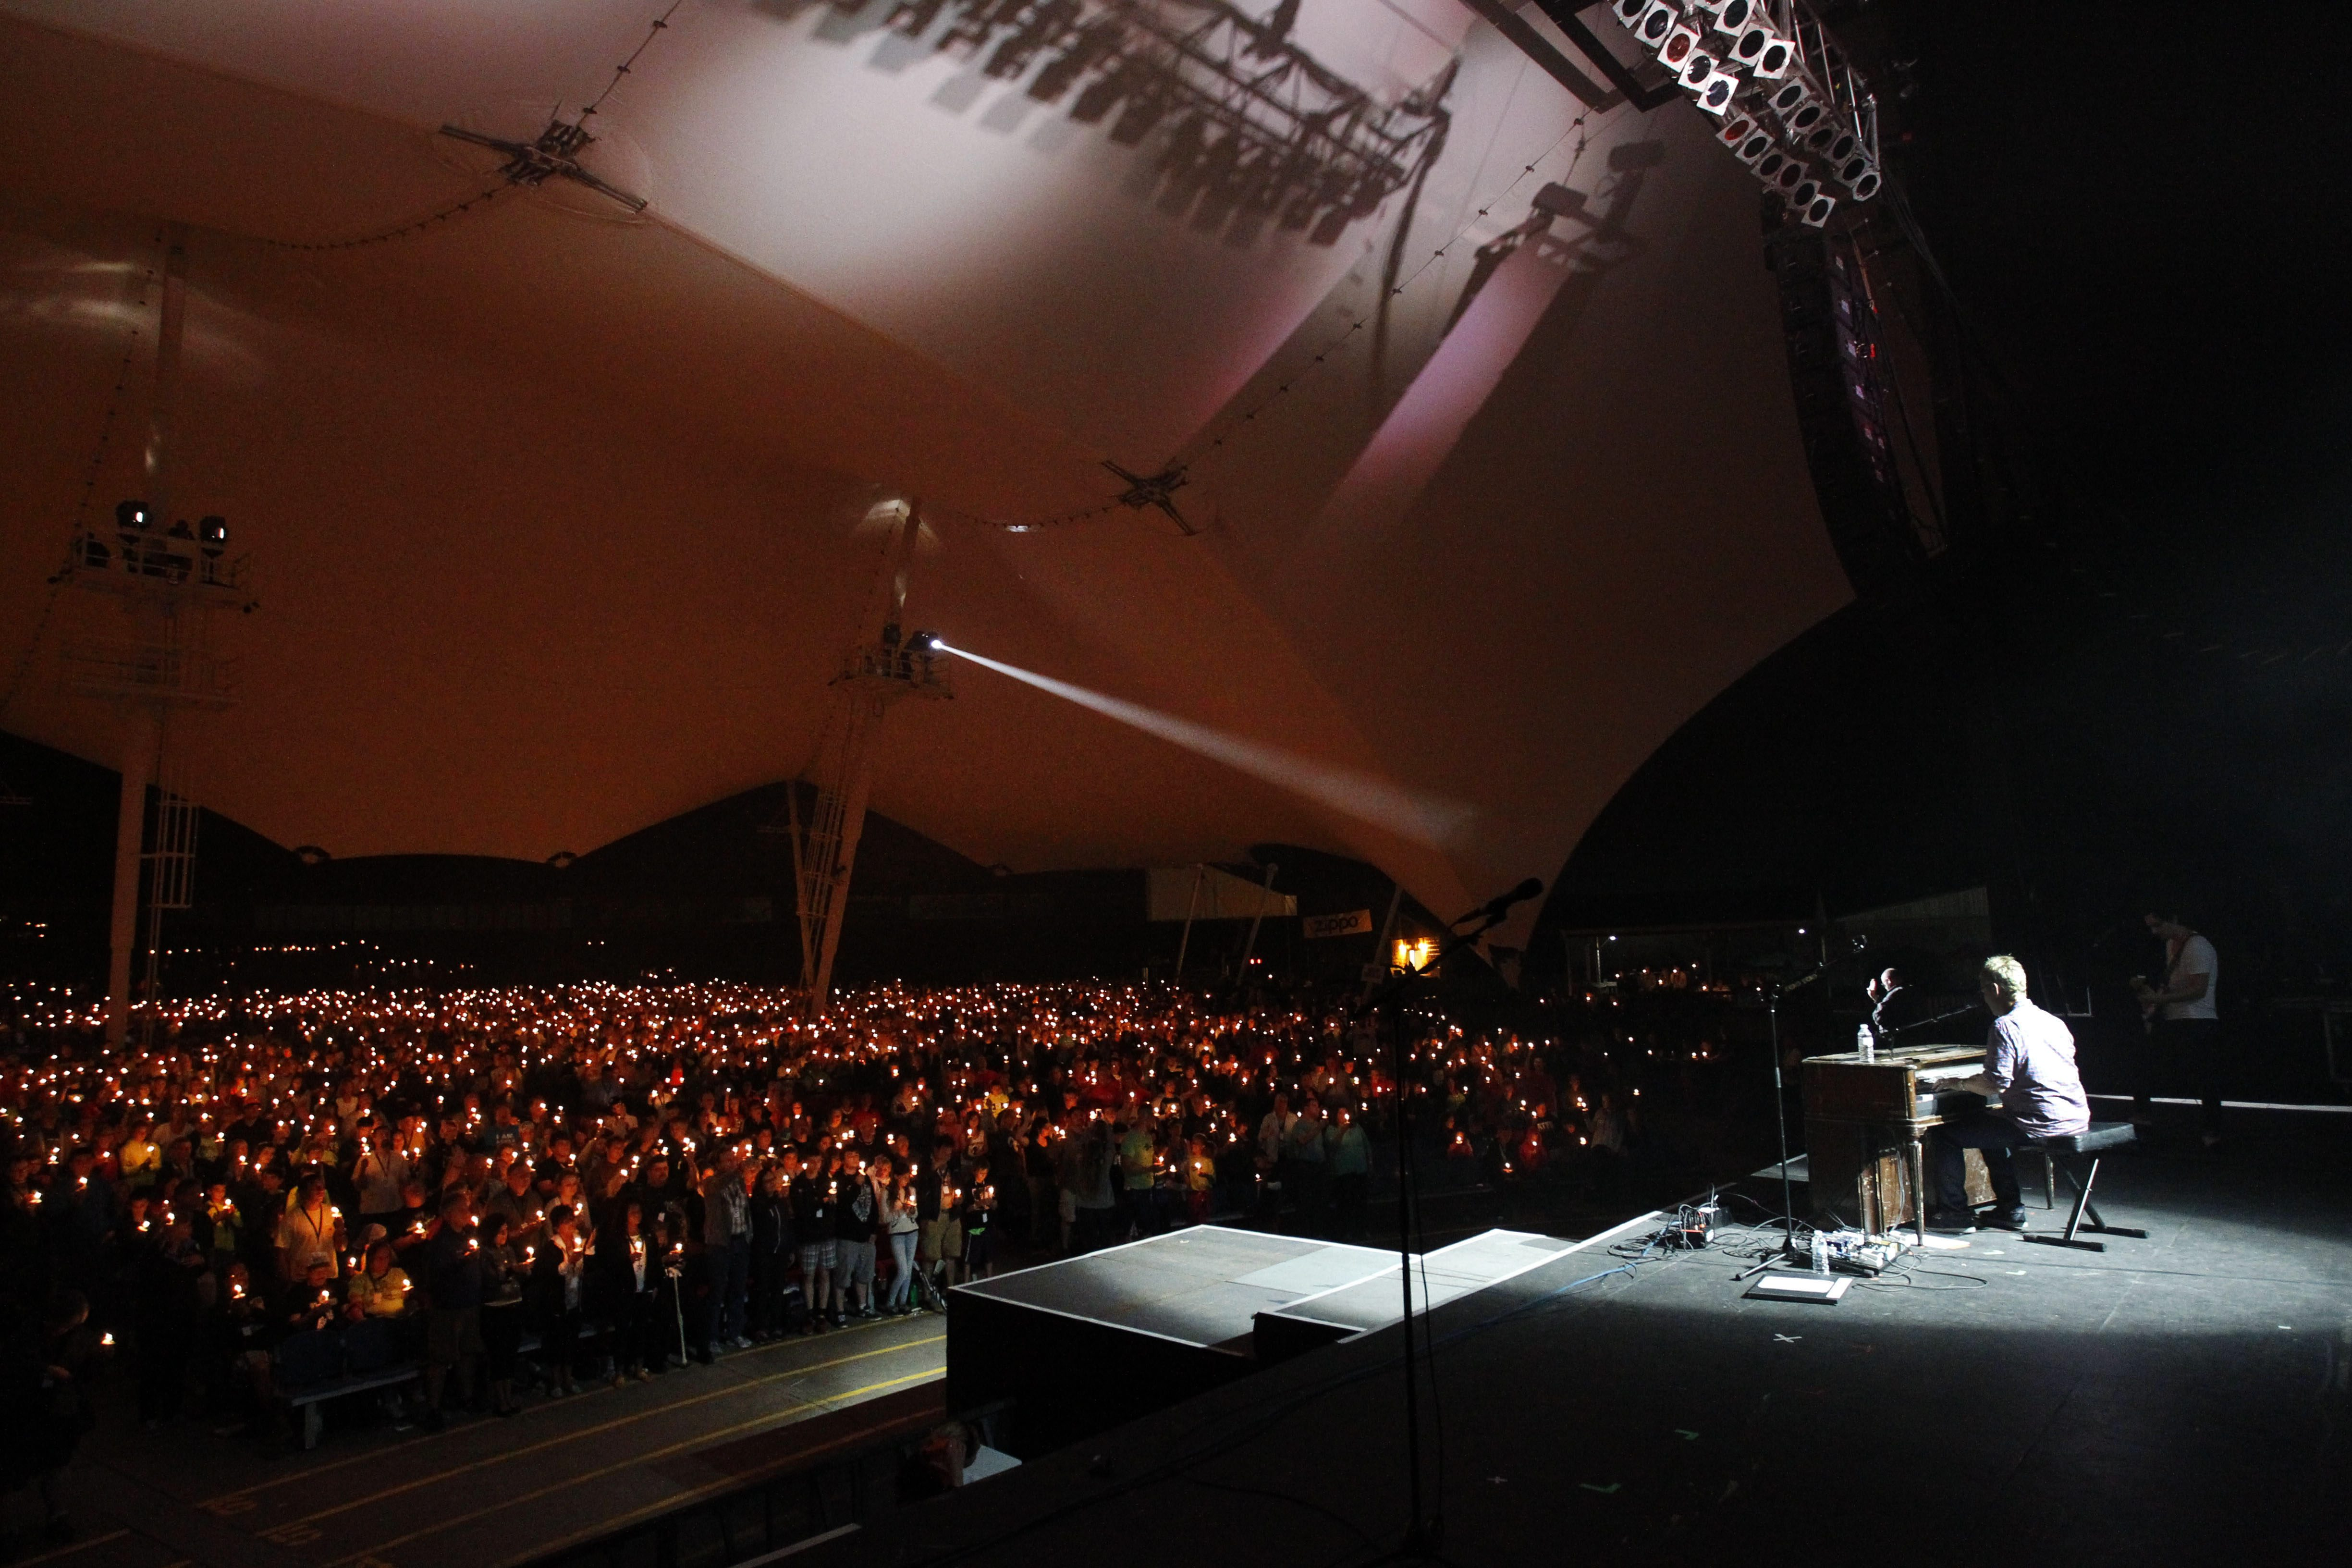 Singer-songwriter Steven Curtis Chapman performs as audience members hold up candles at last year's Kingdom Bound Christian music festival at Darien Lake.